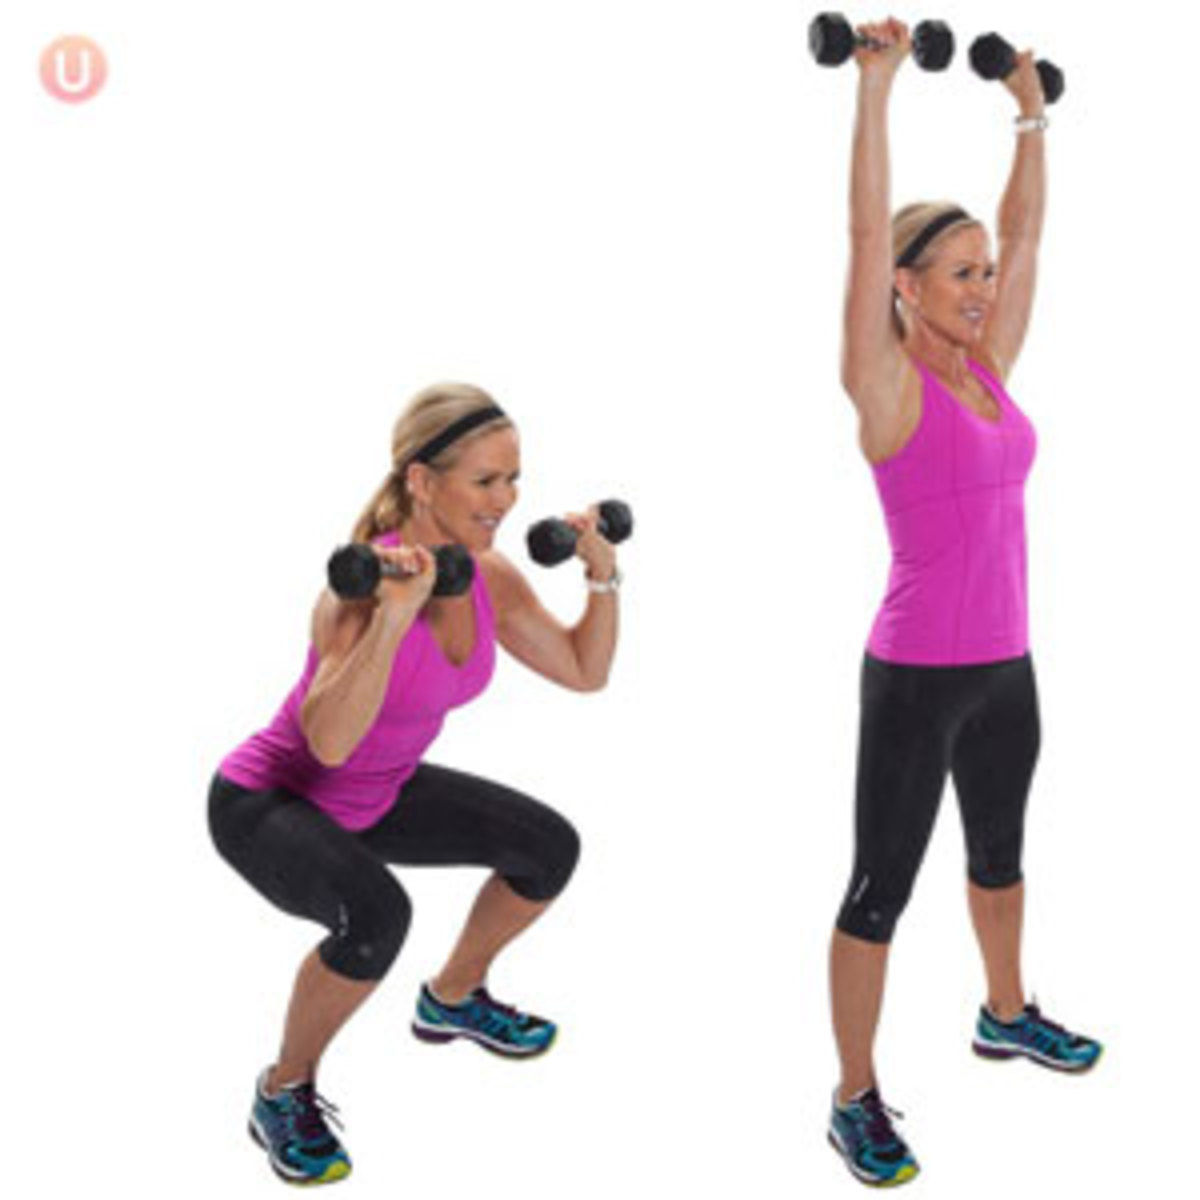 Thrusters: A lower- and upper body explosive lift. It combines two exercises; the front squat and the push press, into one power movement. It may be conducted using either a barbell or dumbbells.